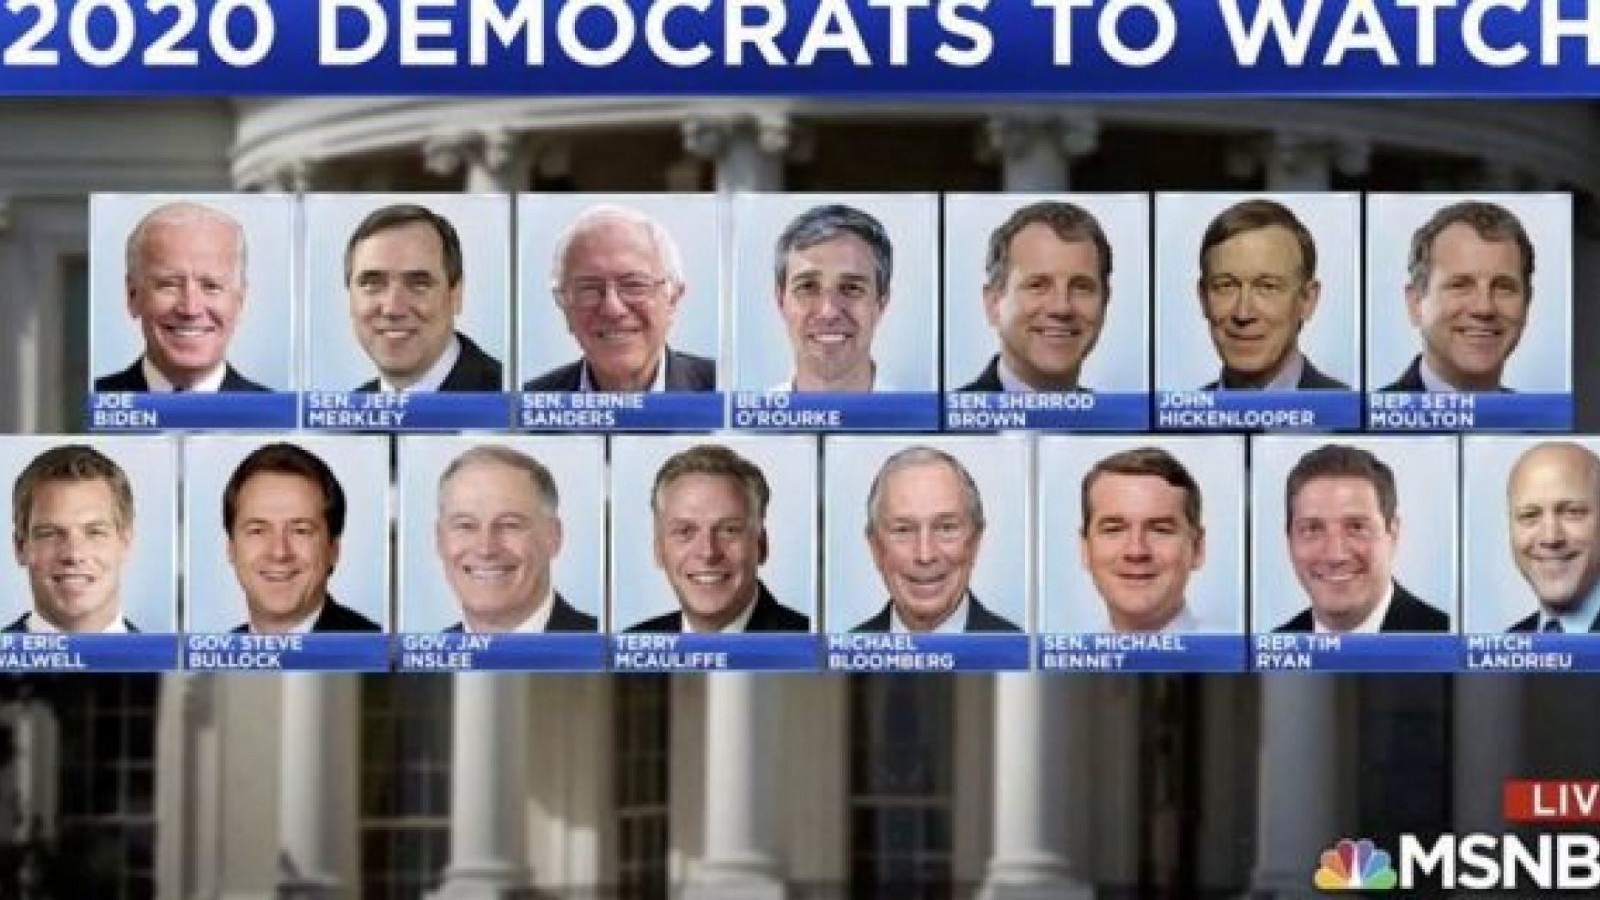 Image of a bunch of white men, many who haven't even declared their candidacy